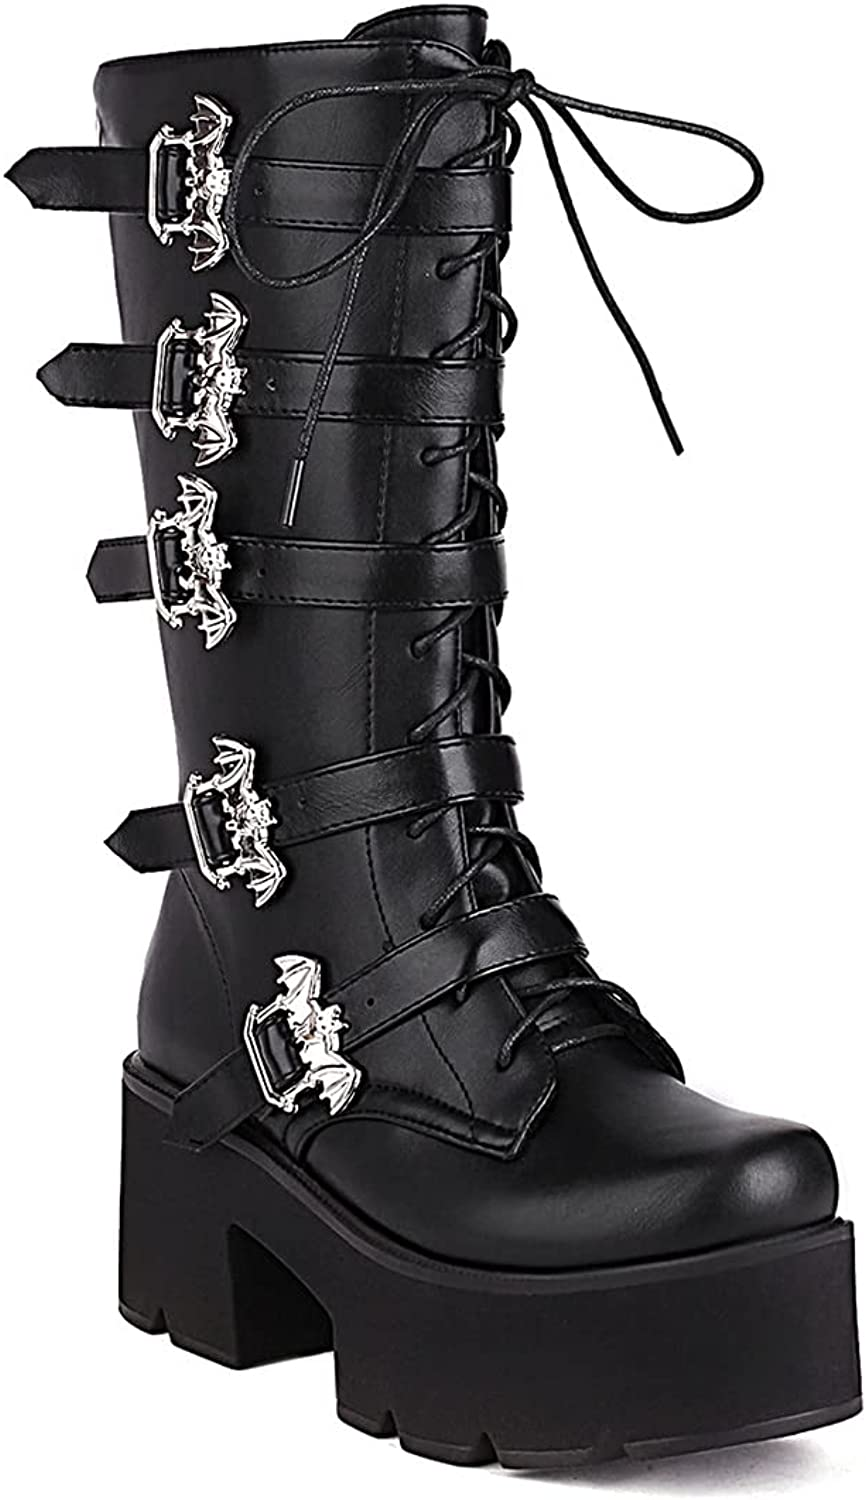 Women's Platform Mid Calf Booties Chunky Block High Heel Combat Boots Round Toe Lace Up Goth Ankle Boots Plus Size Zip Buckle Shoes